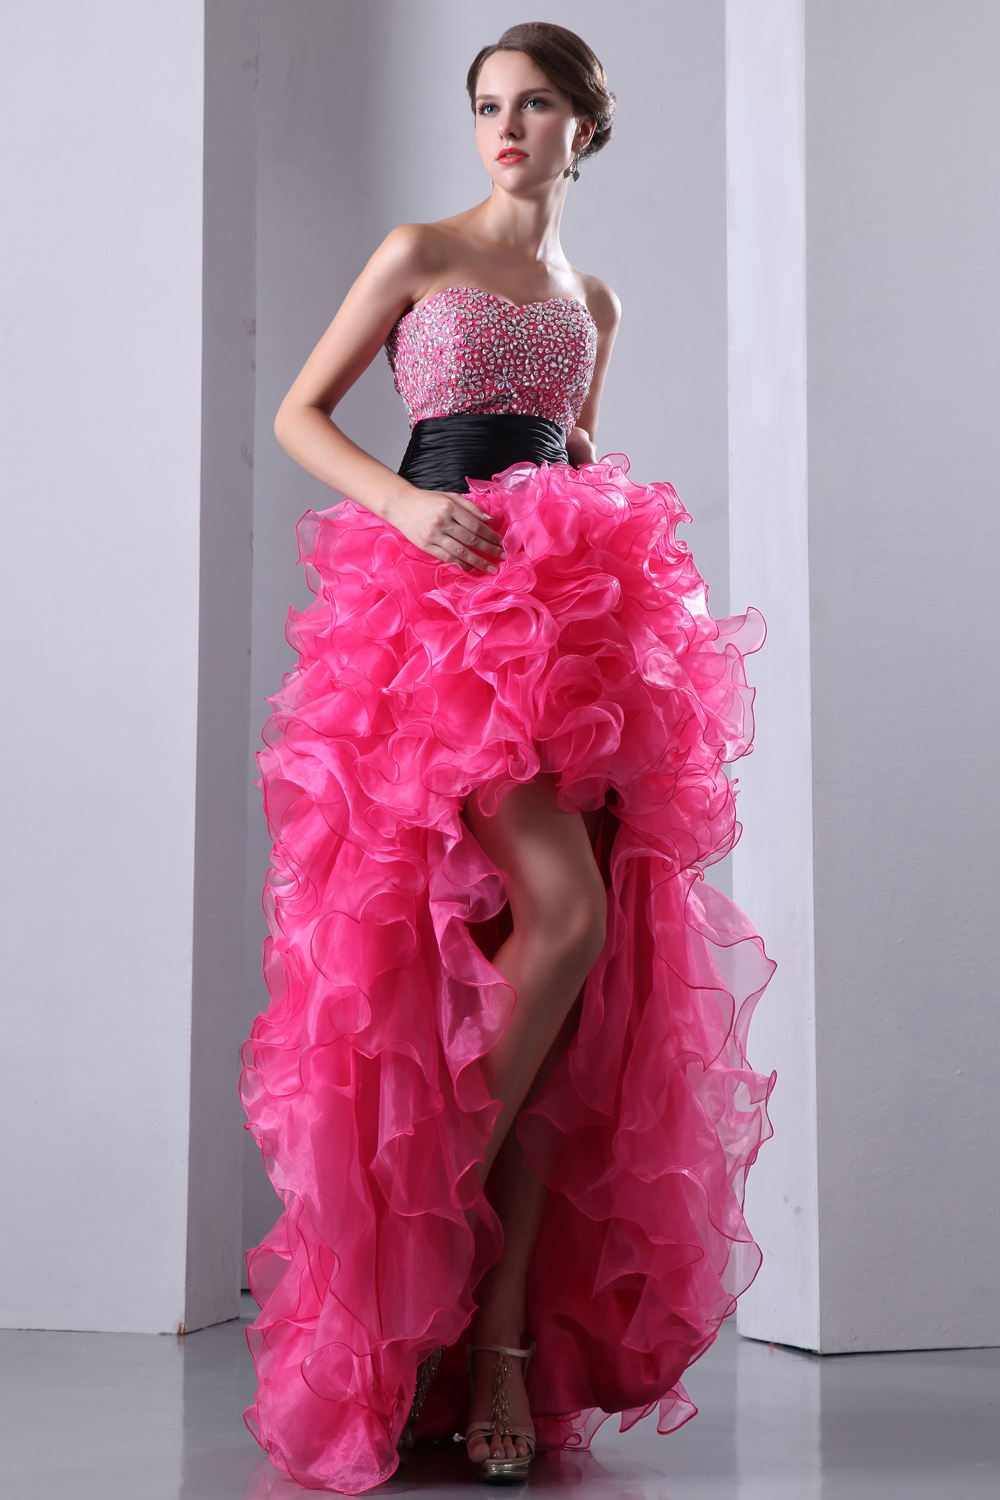 Short Front Long Back Fuchsia Sexy Fashion Crystal Beads Prom Dresses 2018 With Black Sash on Waist Real Photo